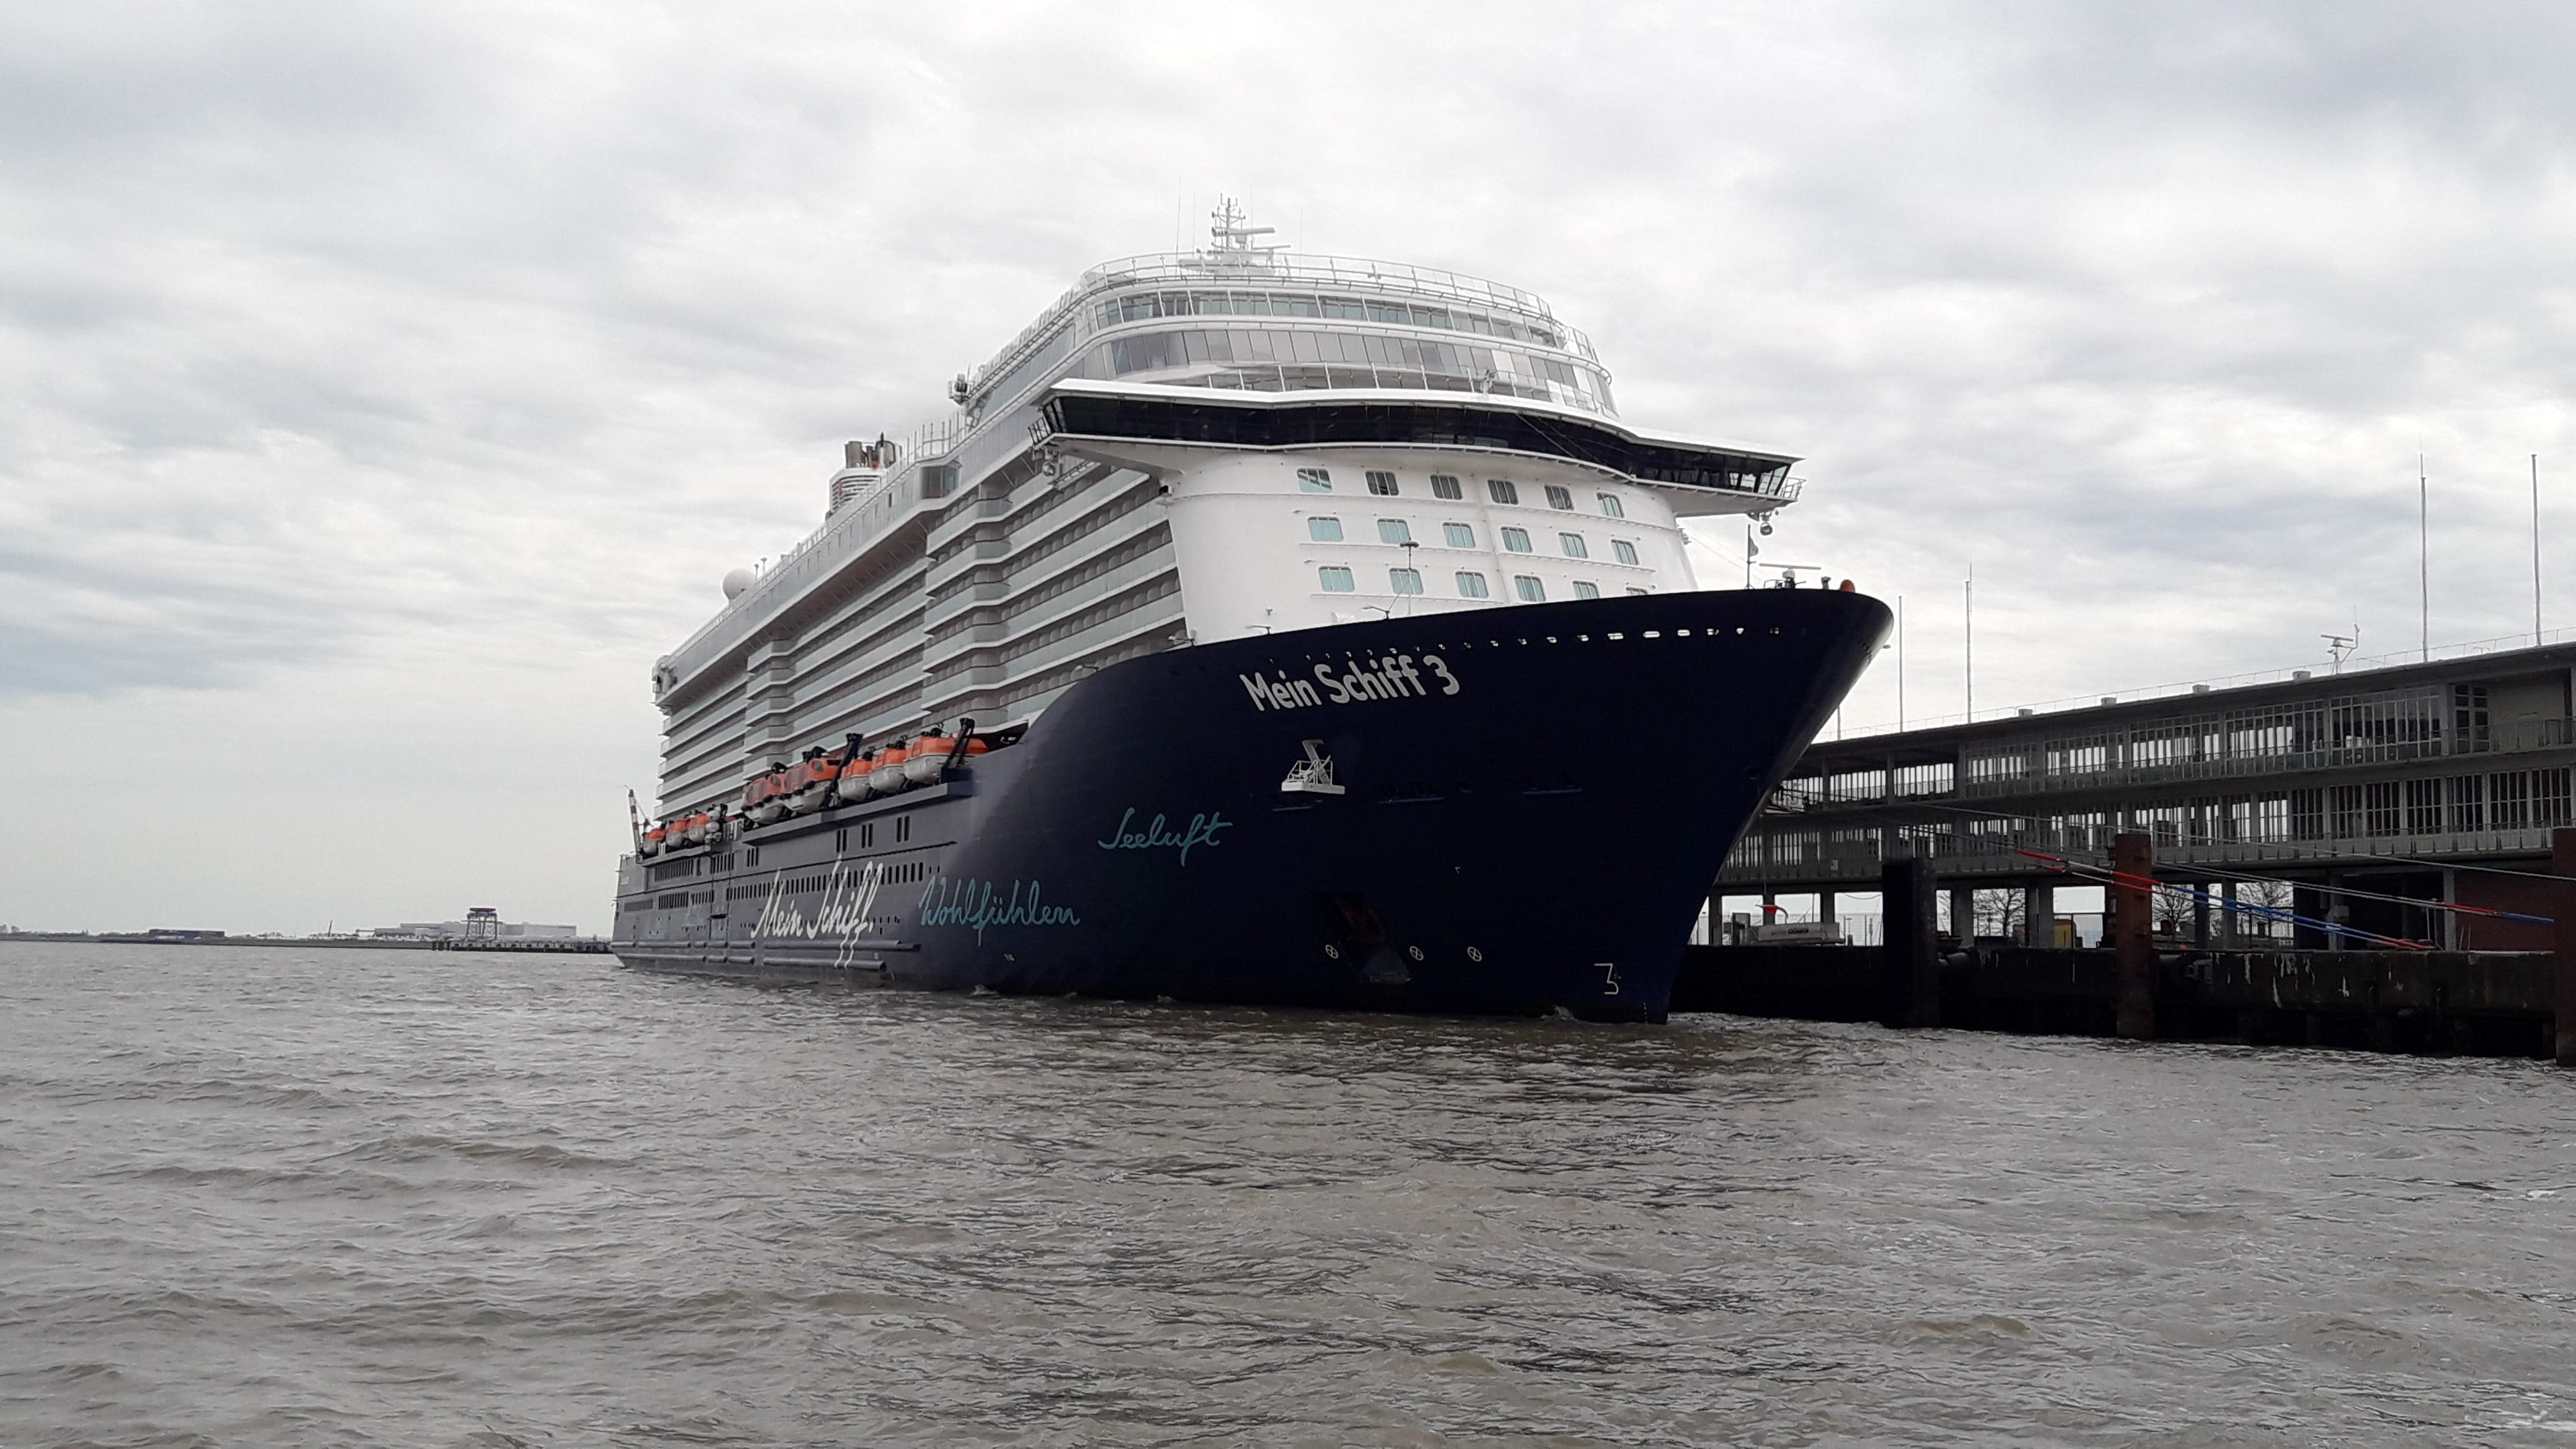 Mein Schiff 3 in Cuxhaven Copyright NPorts min